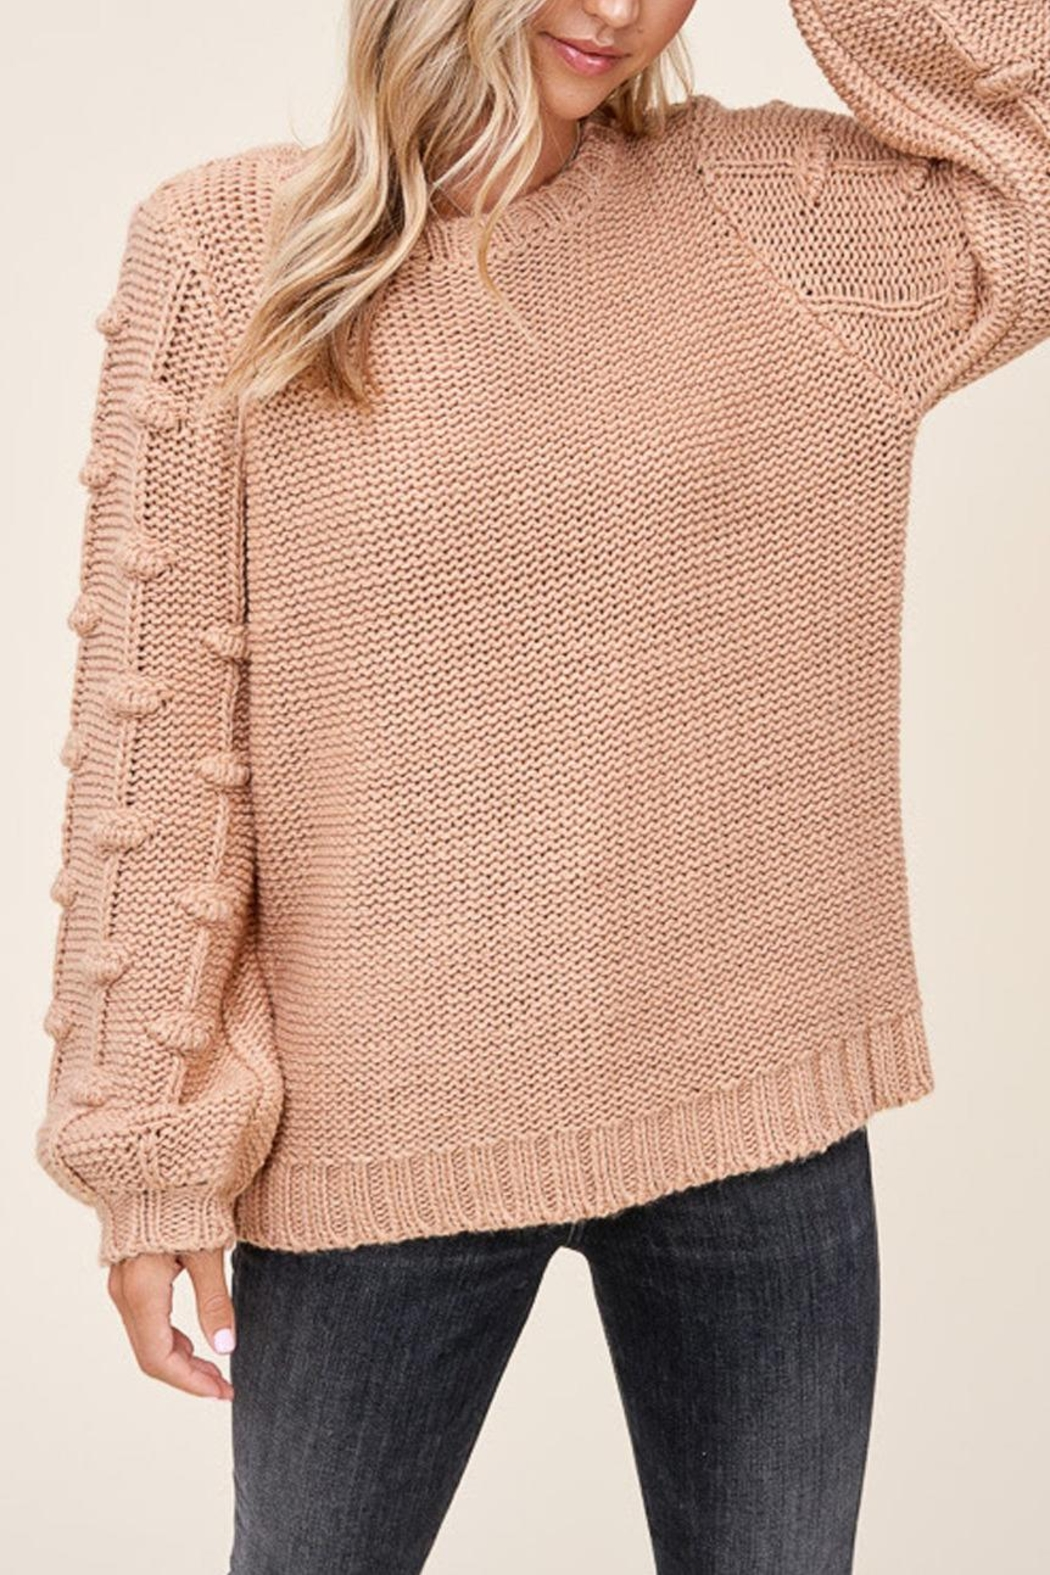 Staccato Pom Sleeve Sweater - Main Image